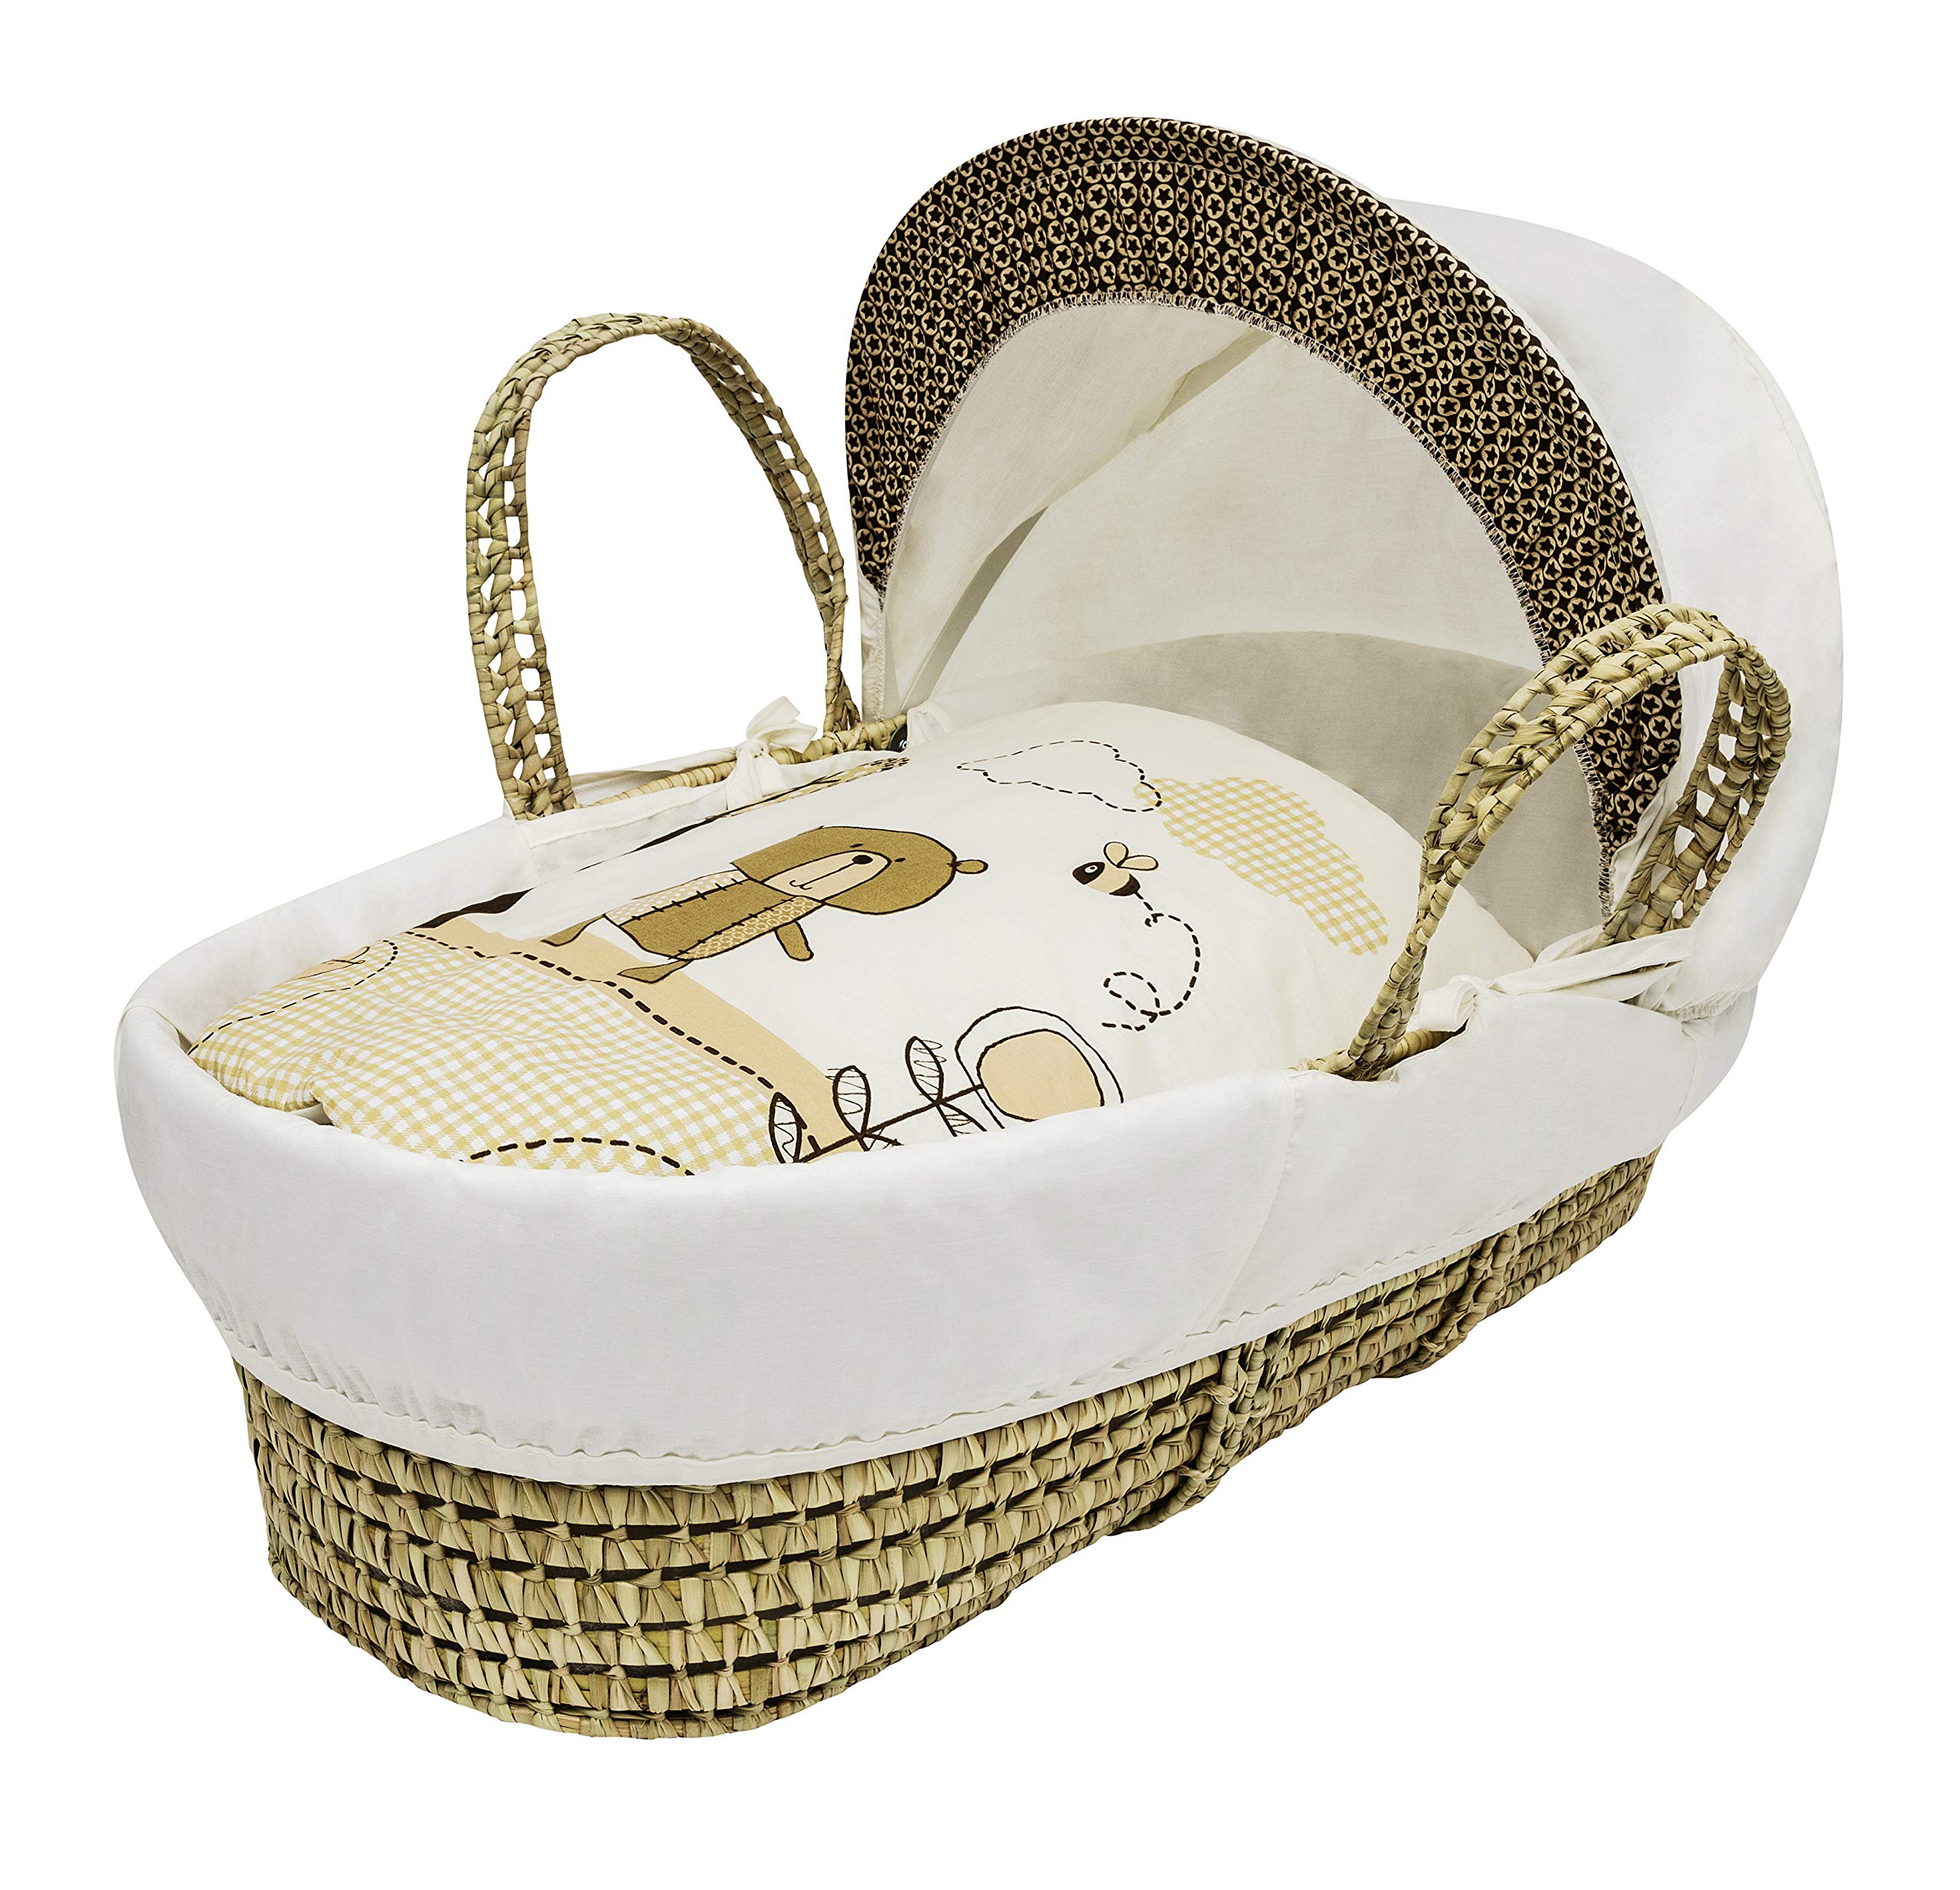 Beary Nice Cream Moses Basket Dressings only(Basket not included) Elegant Baby Dressings For Moses Baskets Includes Padding,Quilt, Liner,Fabric Hood Basket and Mattress and Hood bars are NOT included 1